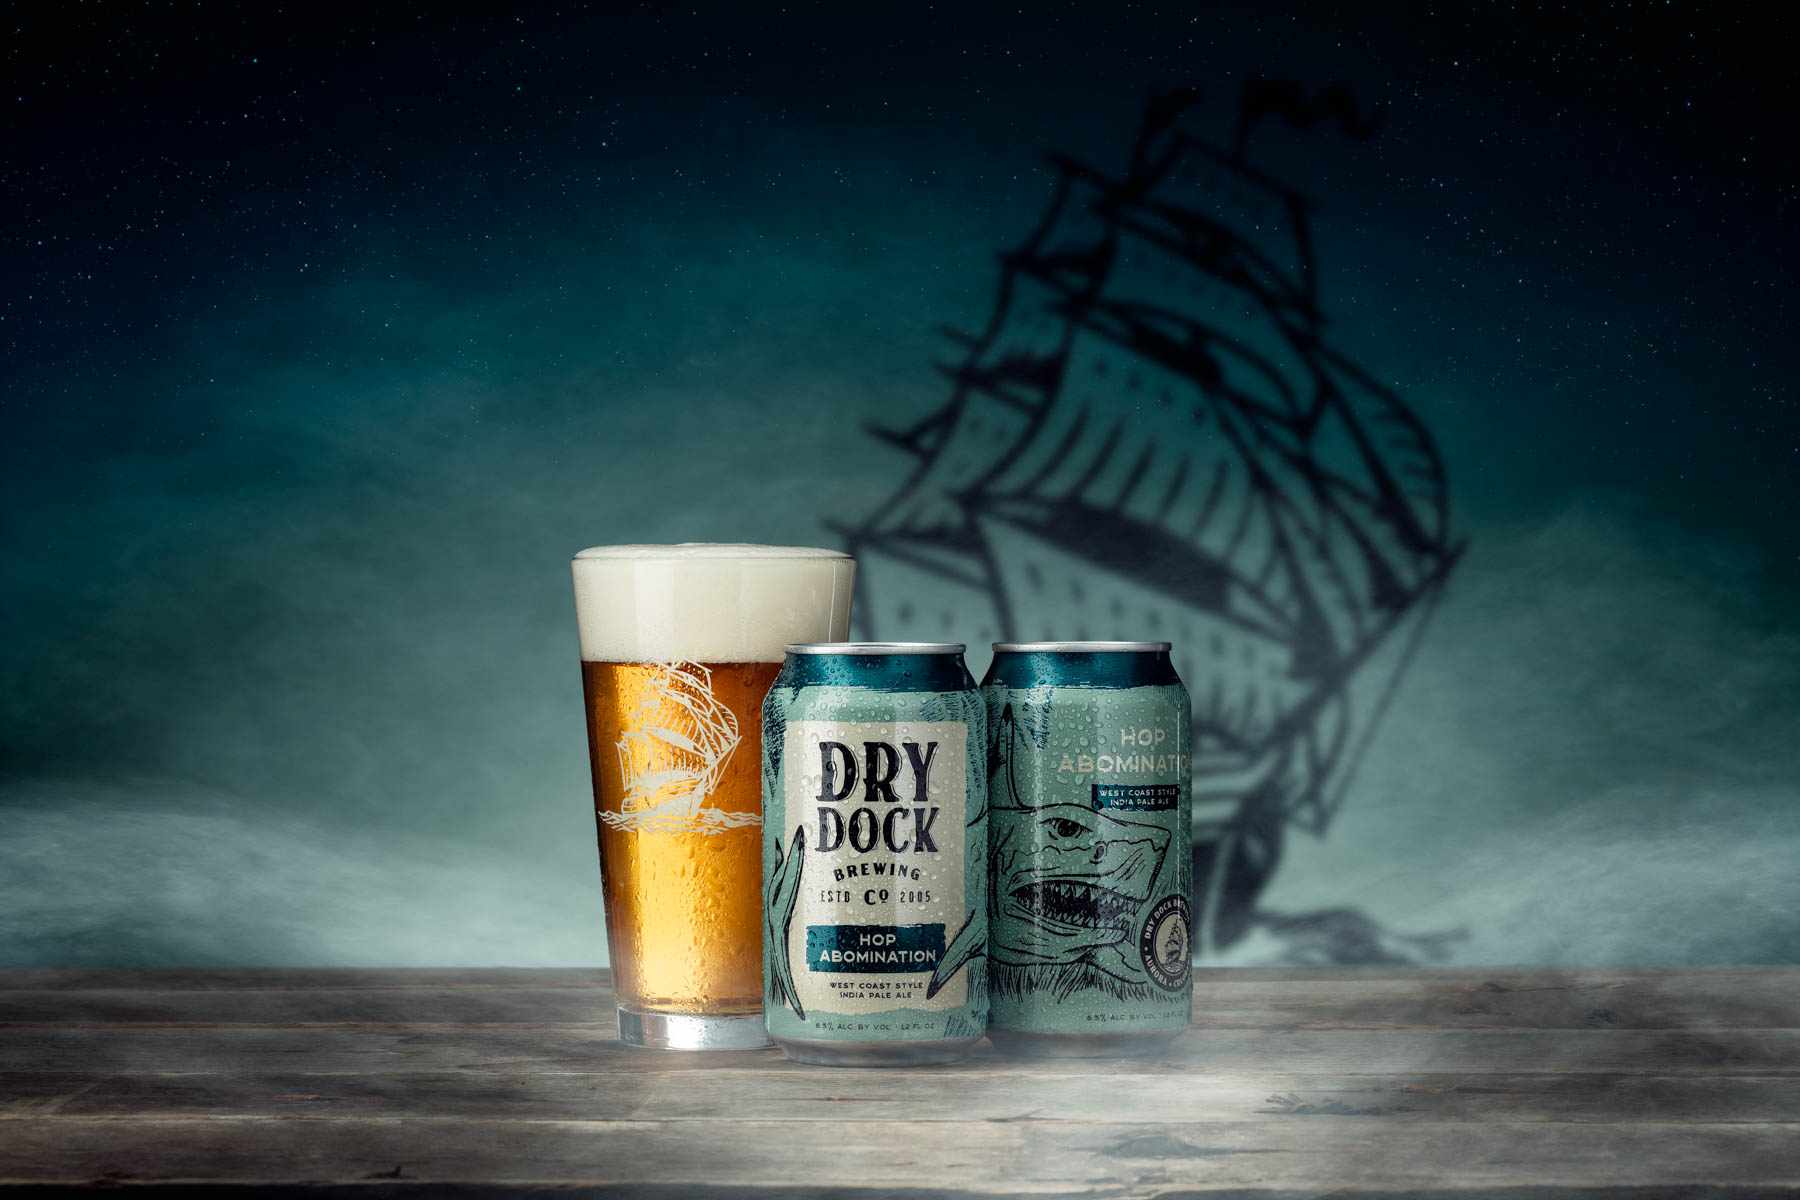 Dry Dock Brewing Hop Abomination images photographed and composited in studio in Littleton, CO for promotional use